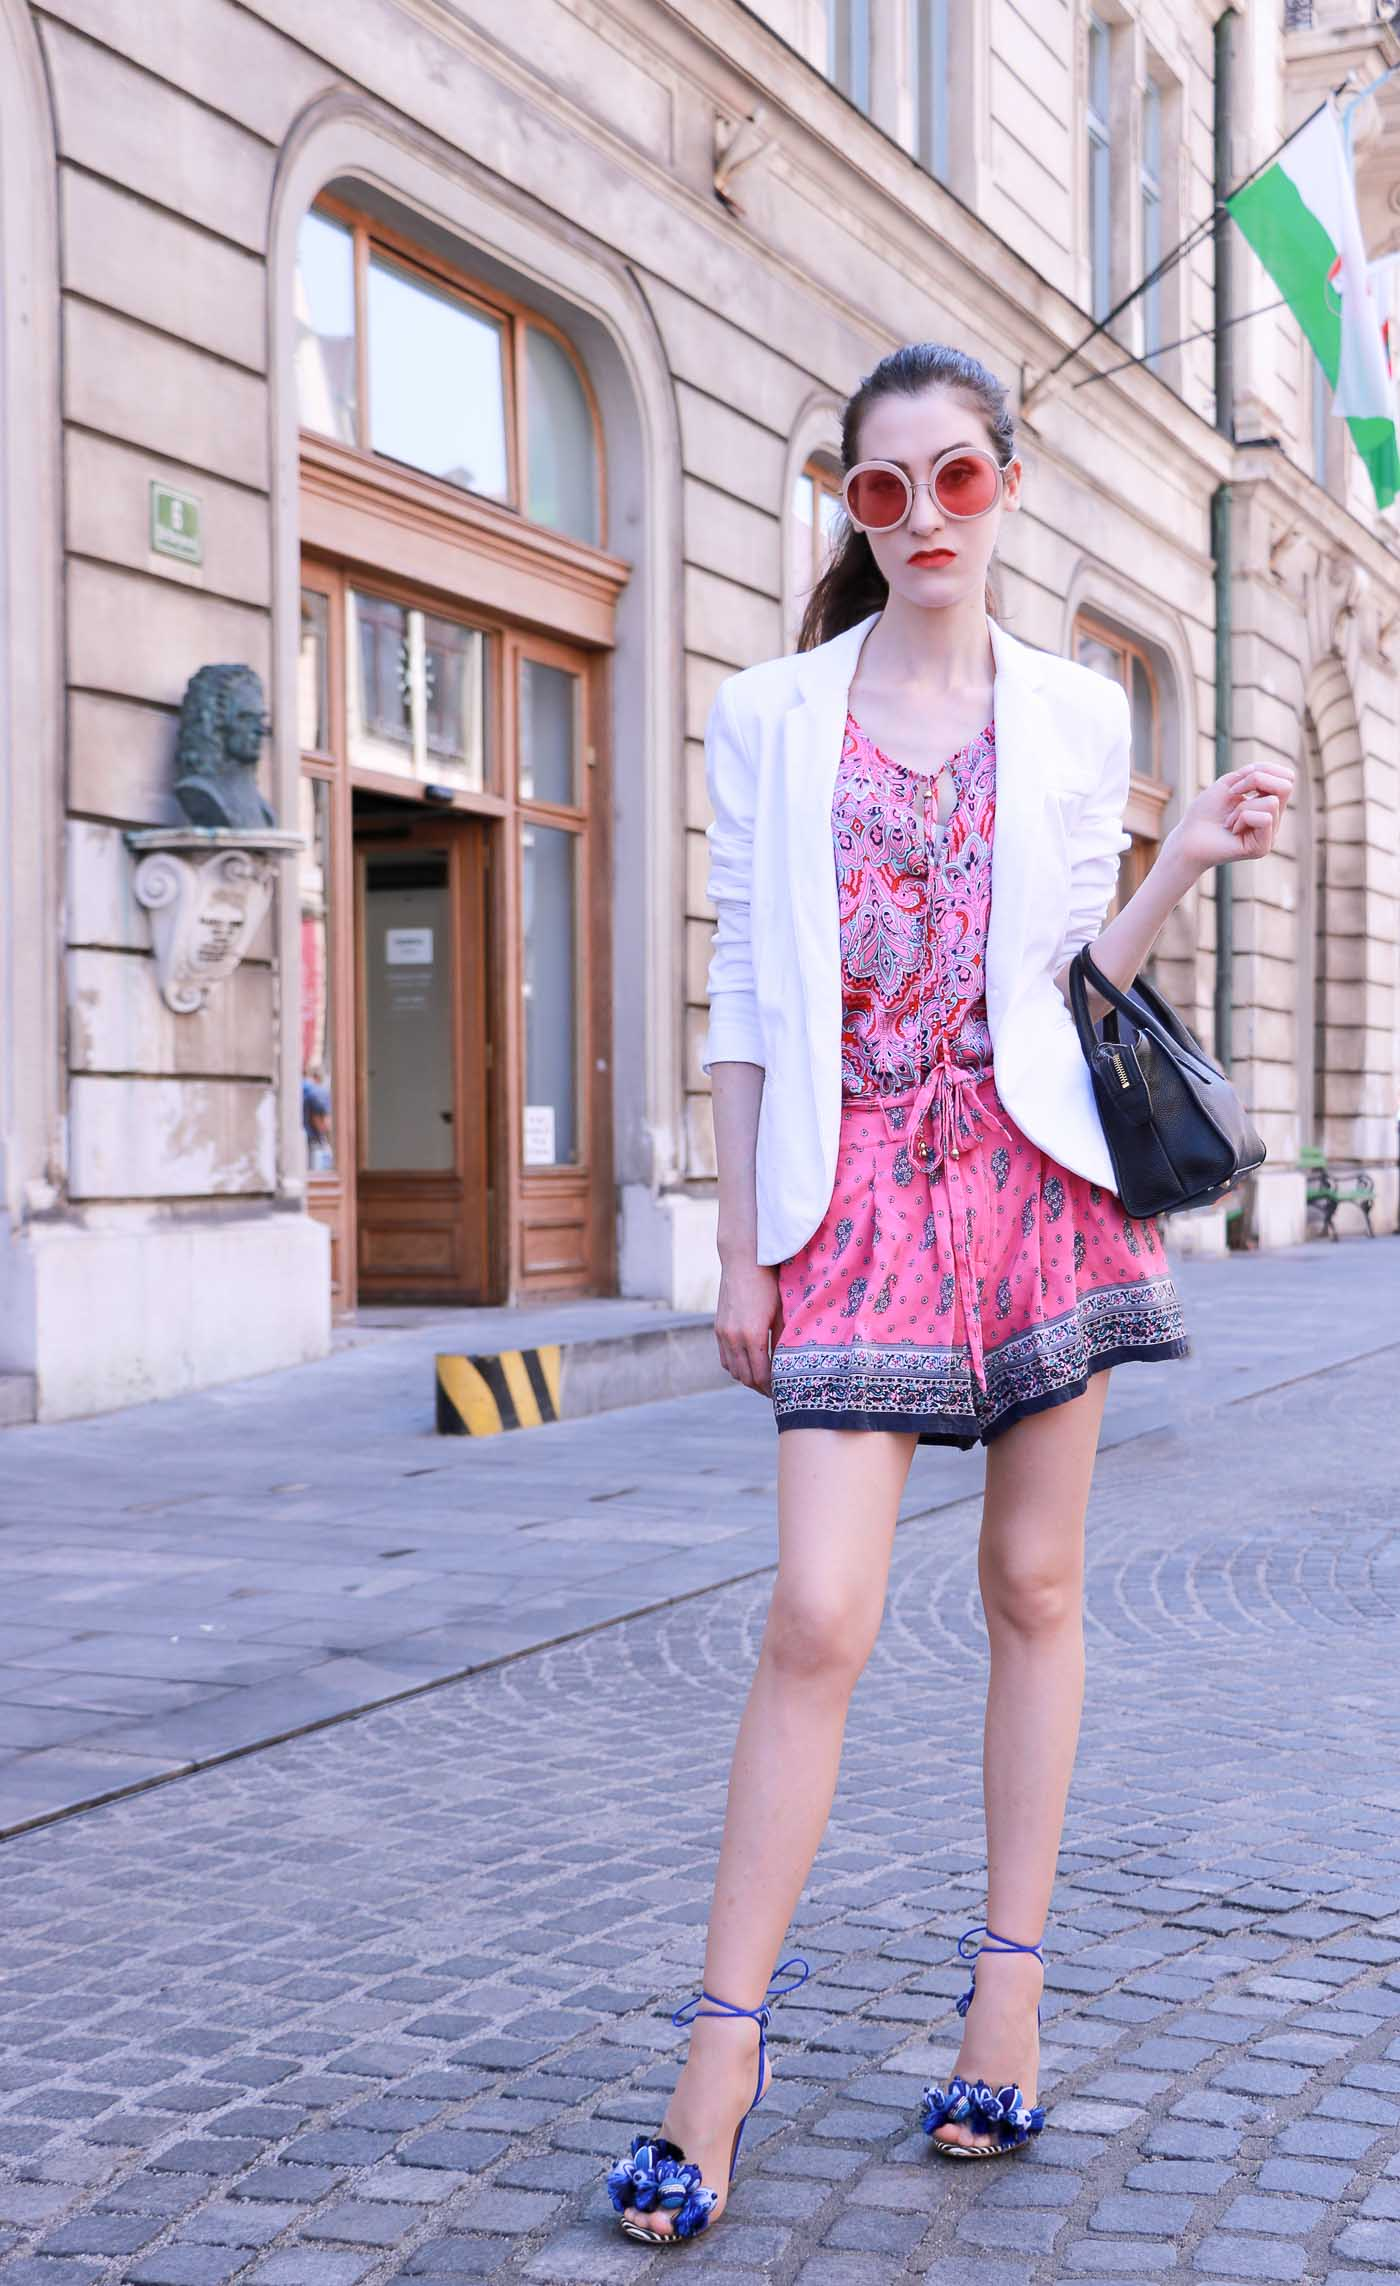 Fashion Blogger Veronika Lipar of Brunette from Wall Street wearing round pink sunglasses from Sunday Somewhere, printed pink silk shorts, printed top, white blazer, blue aquazzura sctrappy sandals, small black bag and a sleek ponytail while posing on a street in Ljubljana